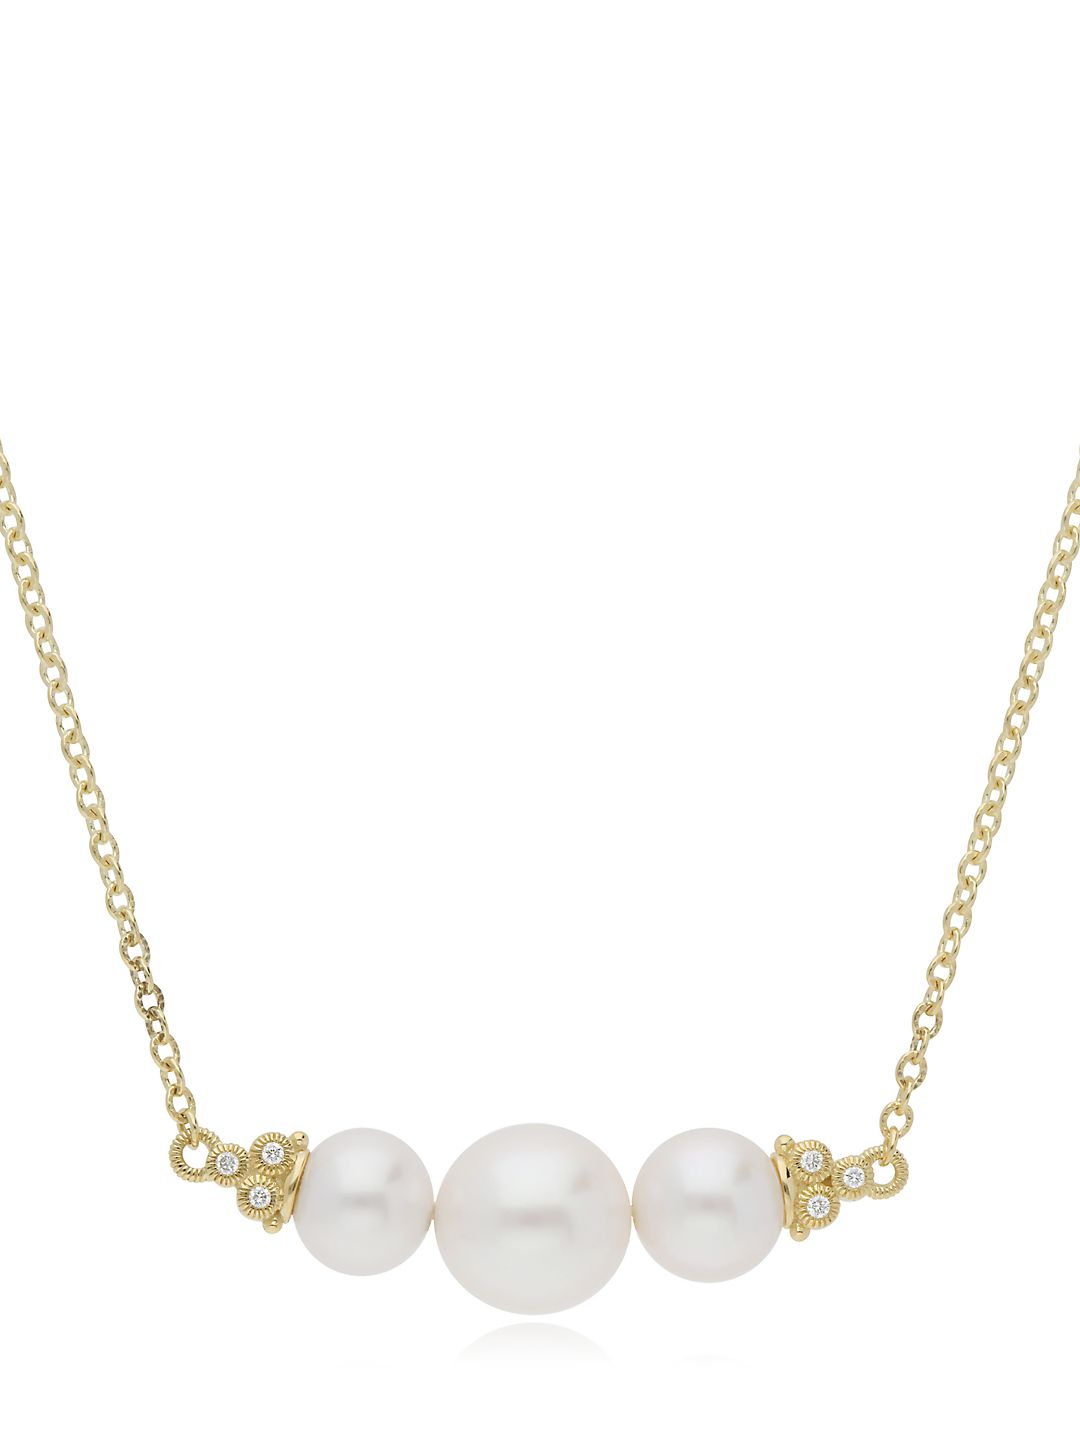 Bella Triple 7-9.5MM Chinese Freshwater Pearl, Diamond and 14K Yellow Gold Necklace